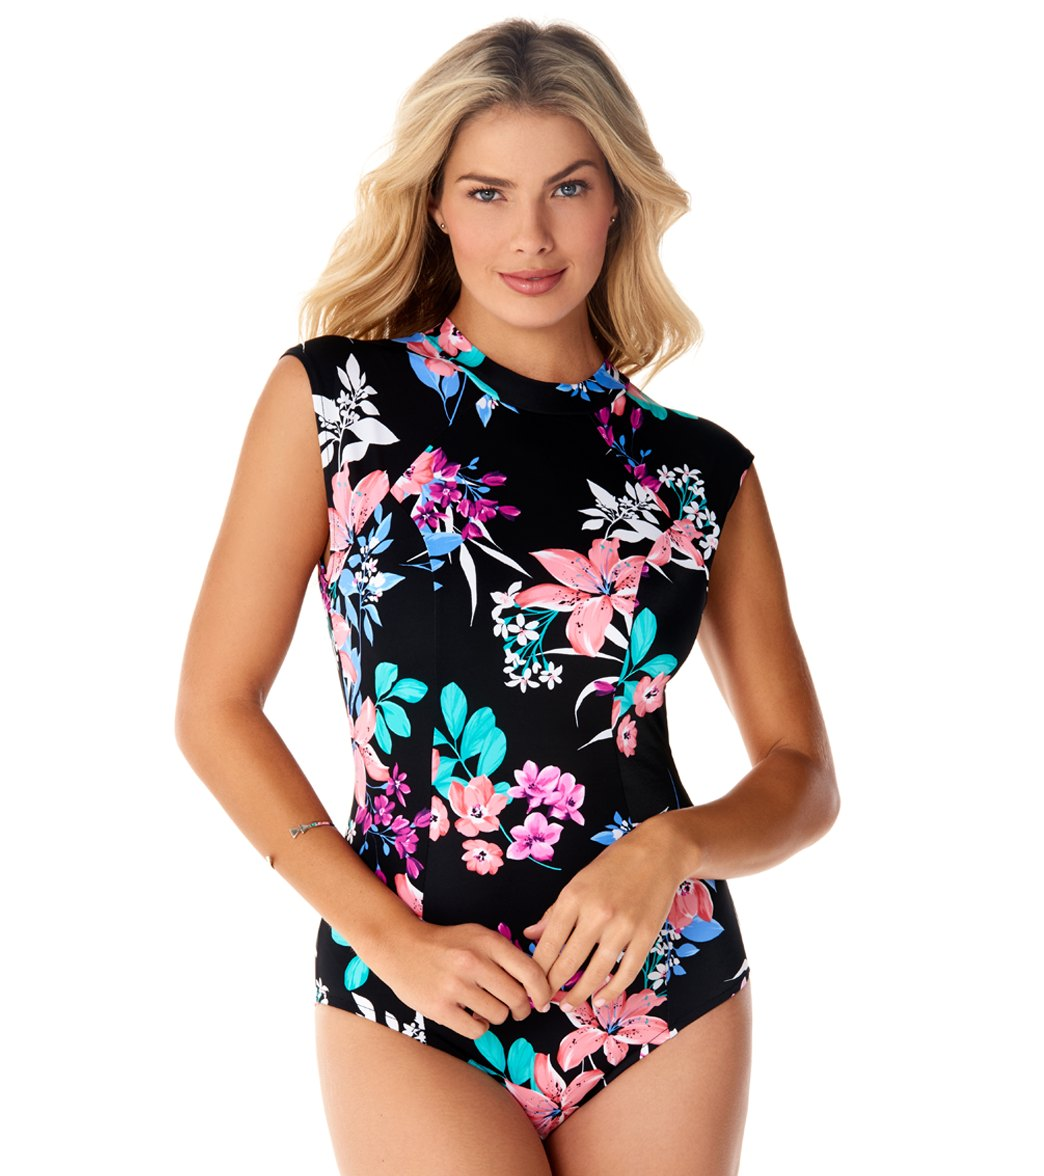 671291a3930 Penbrooke Garden Lily High Neck Cap Sleeve One Piece Swimsuit at SwimOutlet. com - Free Shipping